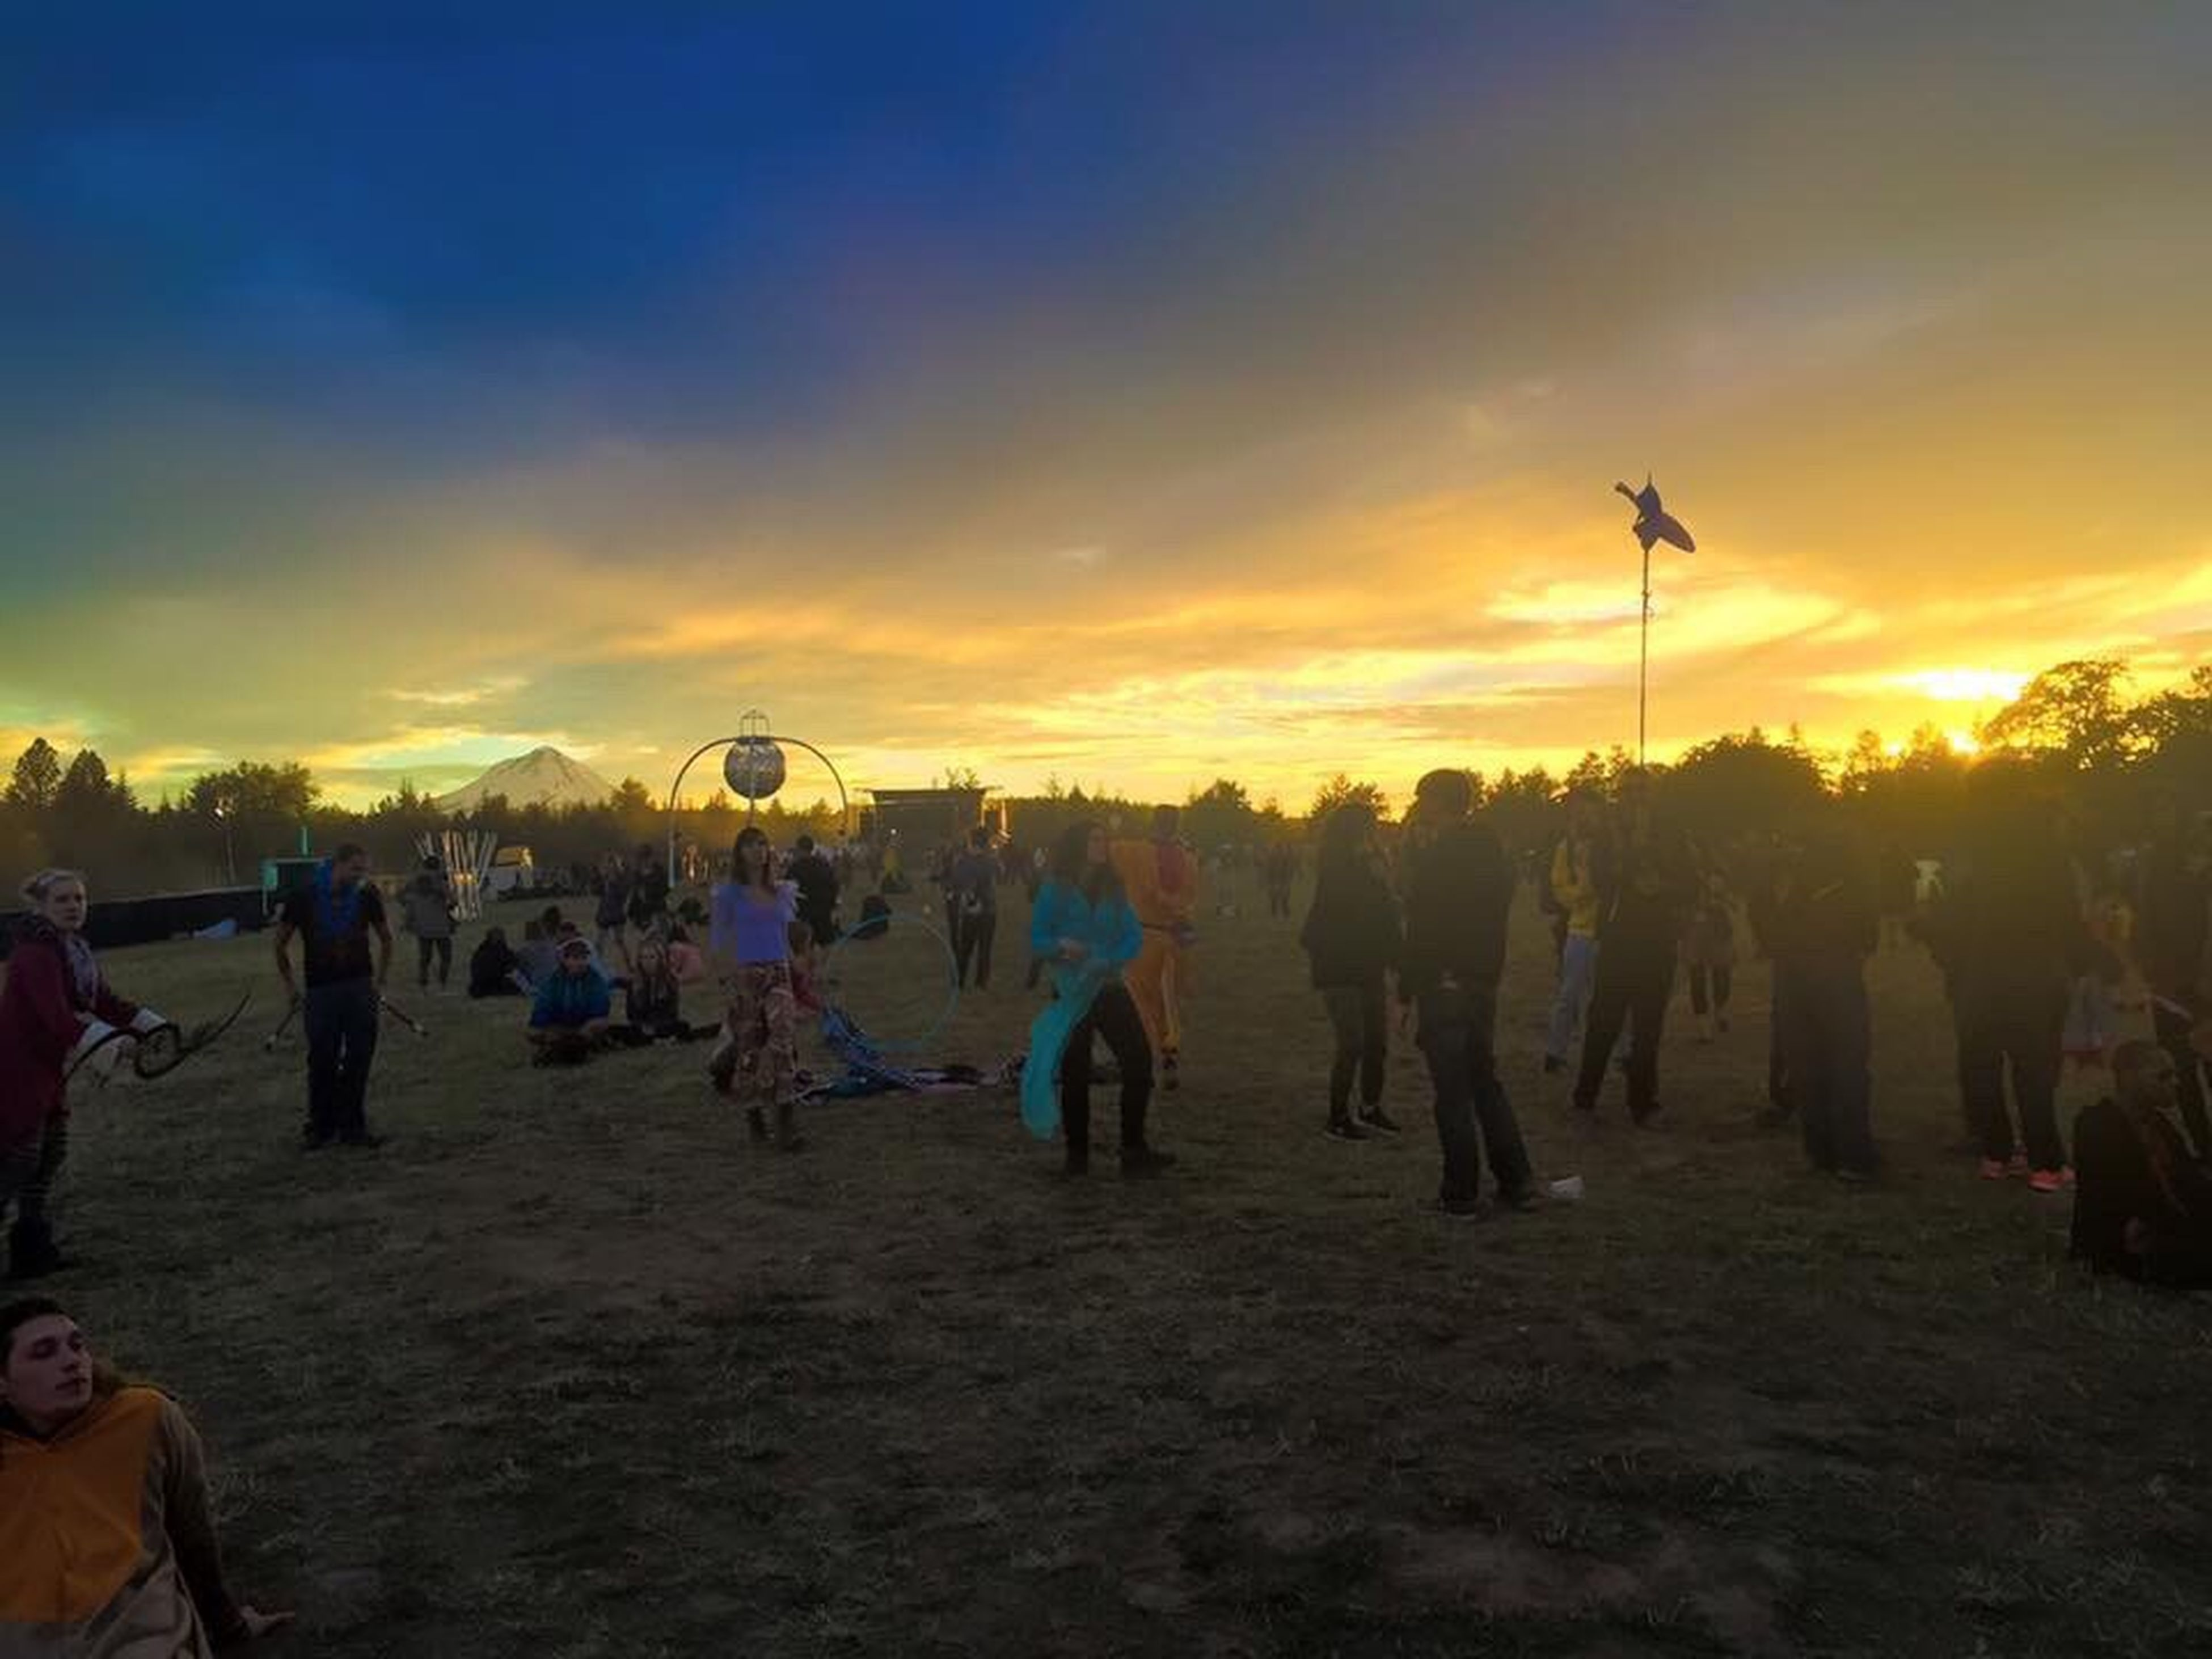 large group of people, sunset, cloud - sky, crowd, people, city, full length, sky, outdoors, adult, adults only, day